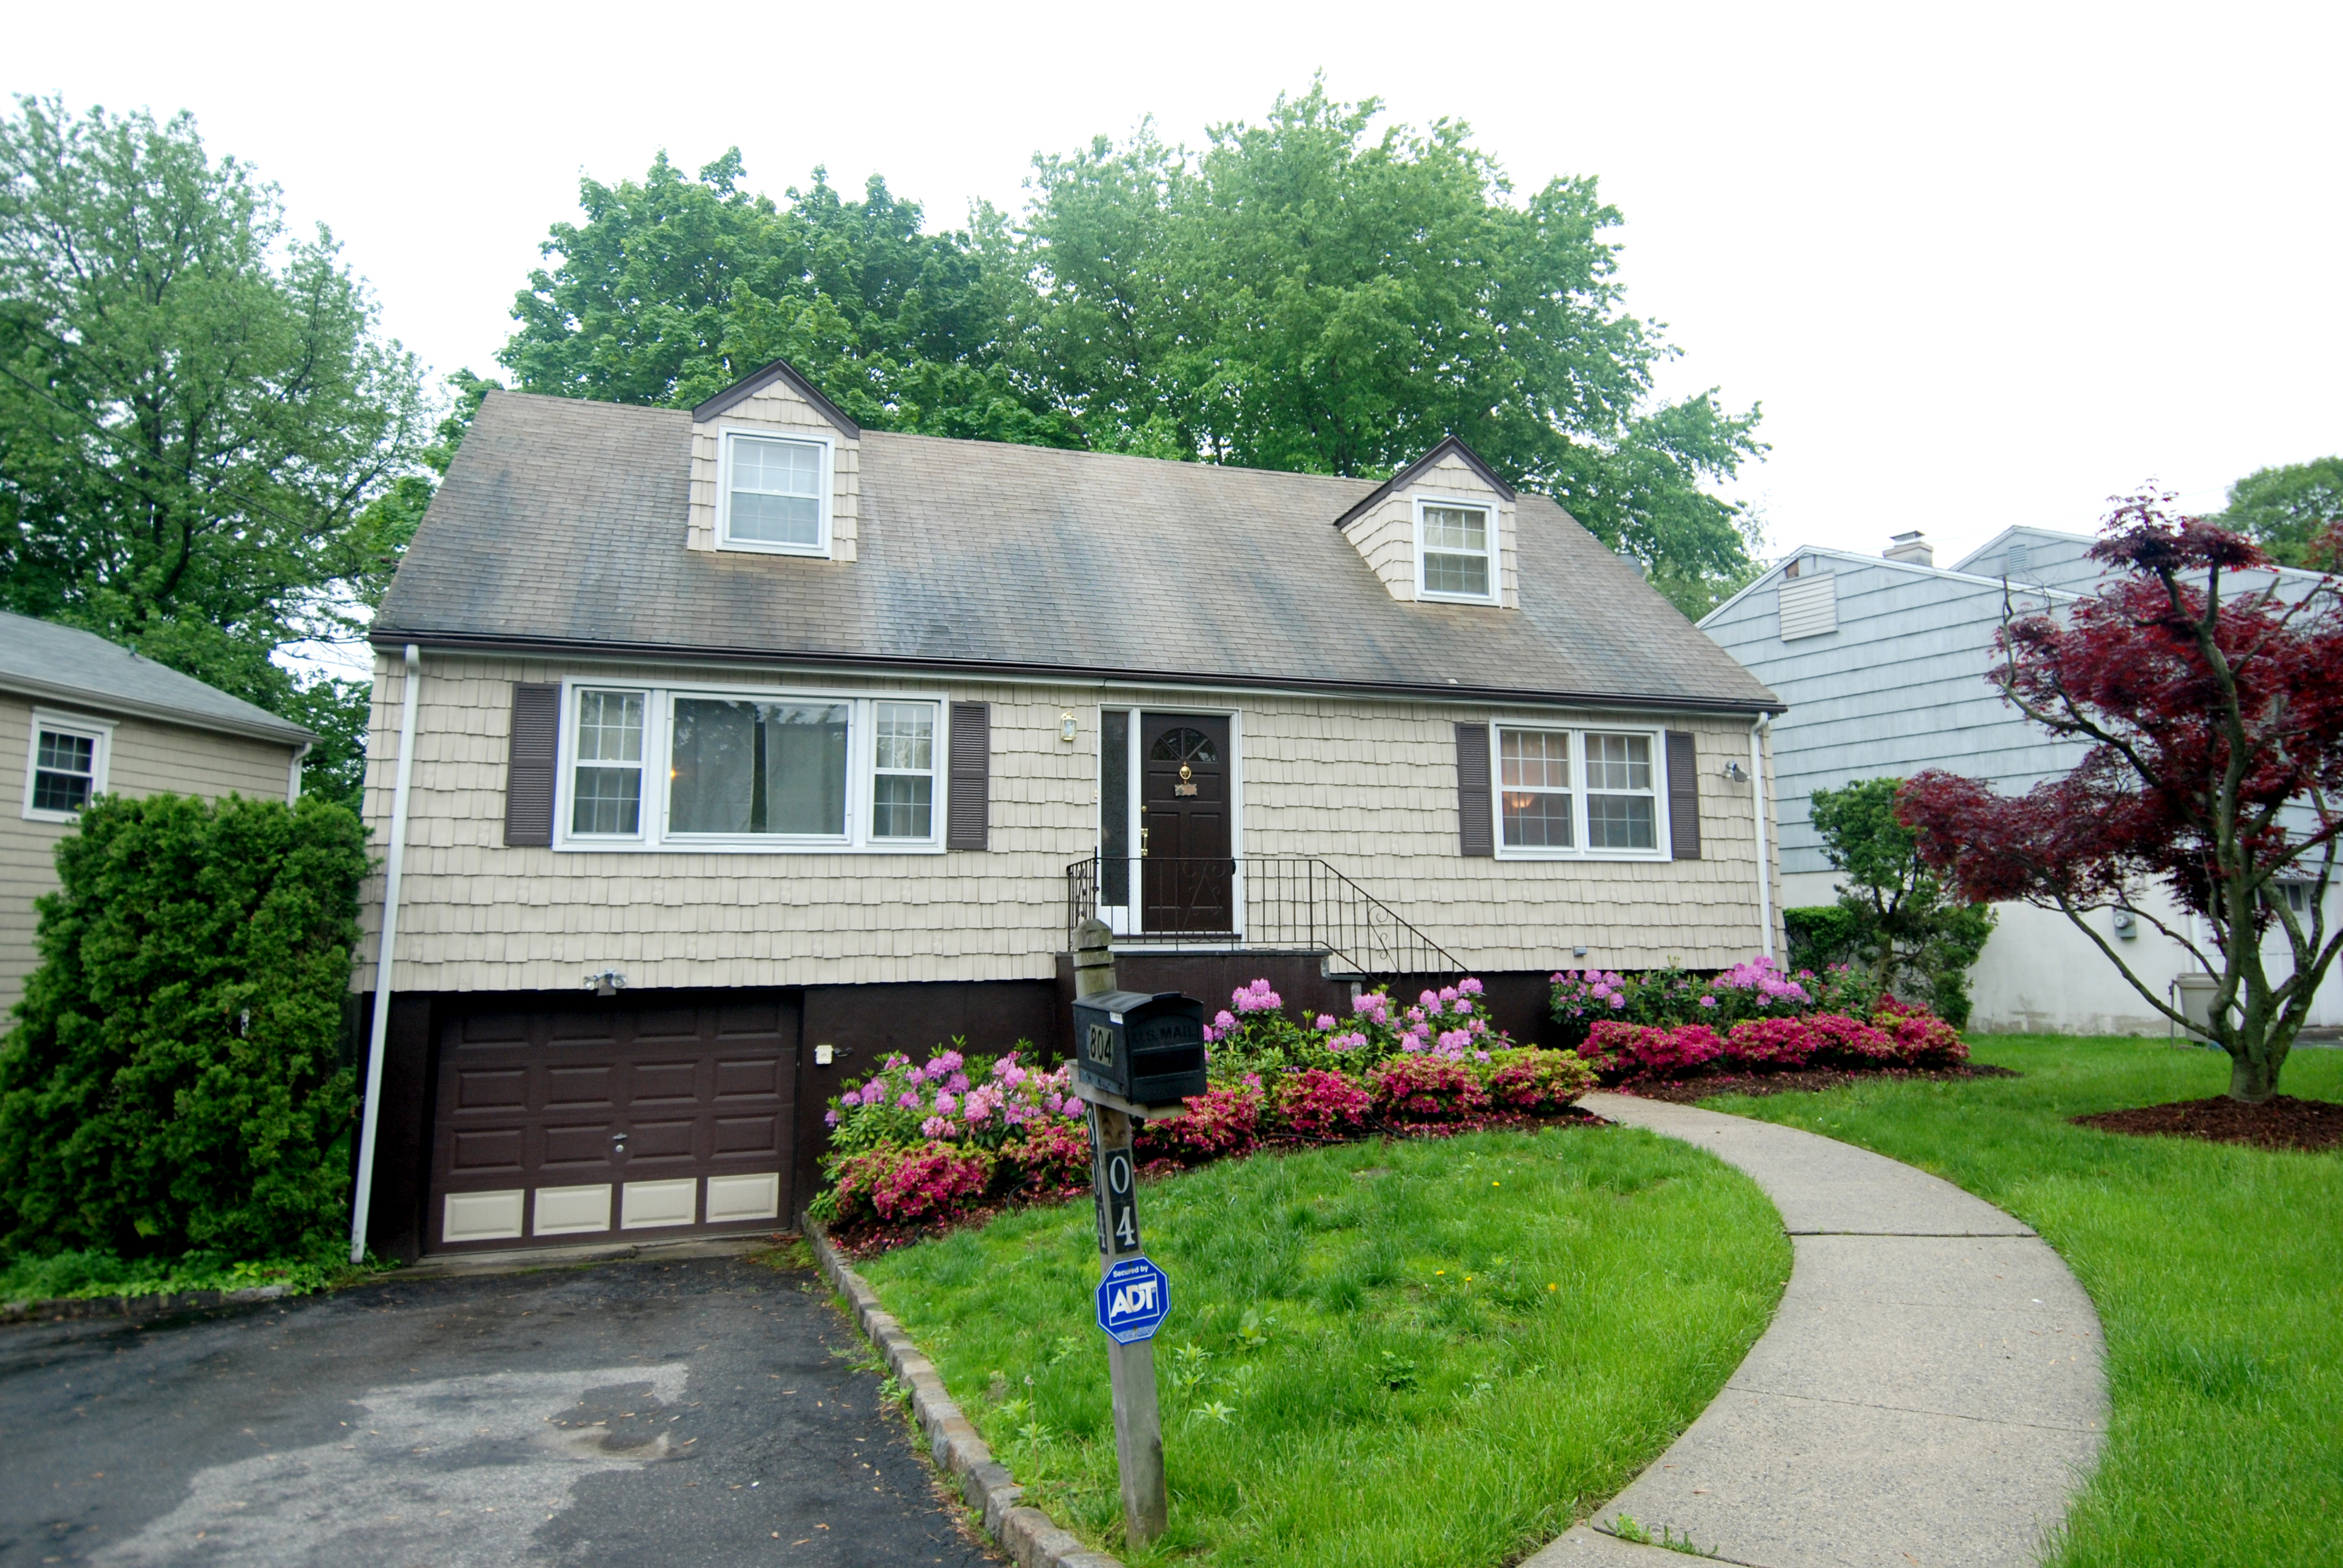 Single Family Home for Sale at Charming Larchmont Cape 804 Rockland Avenue Larchmont, New York 10543 United States